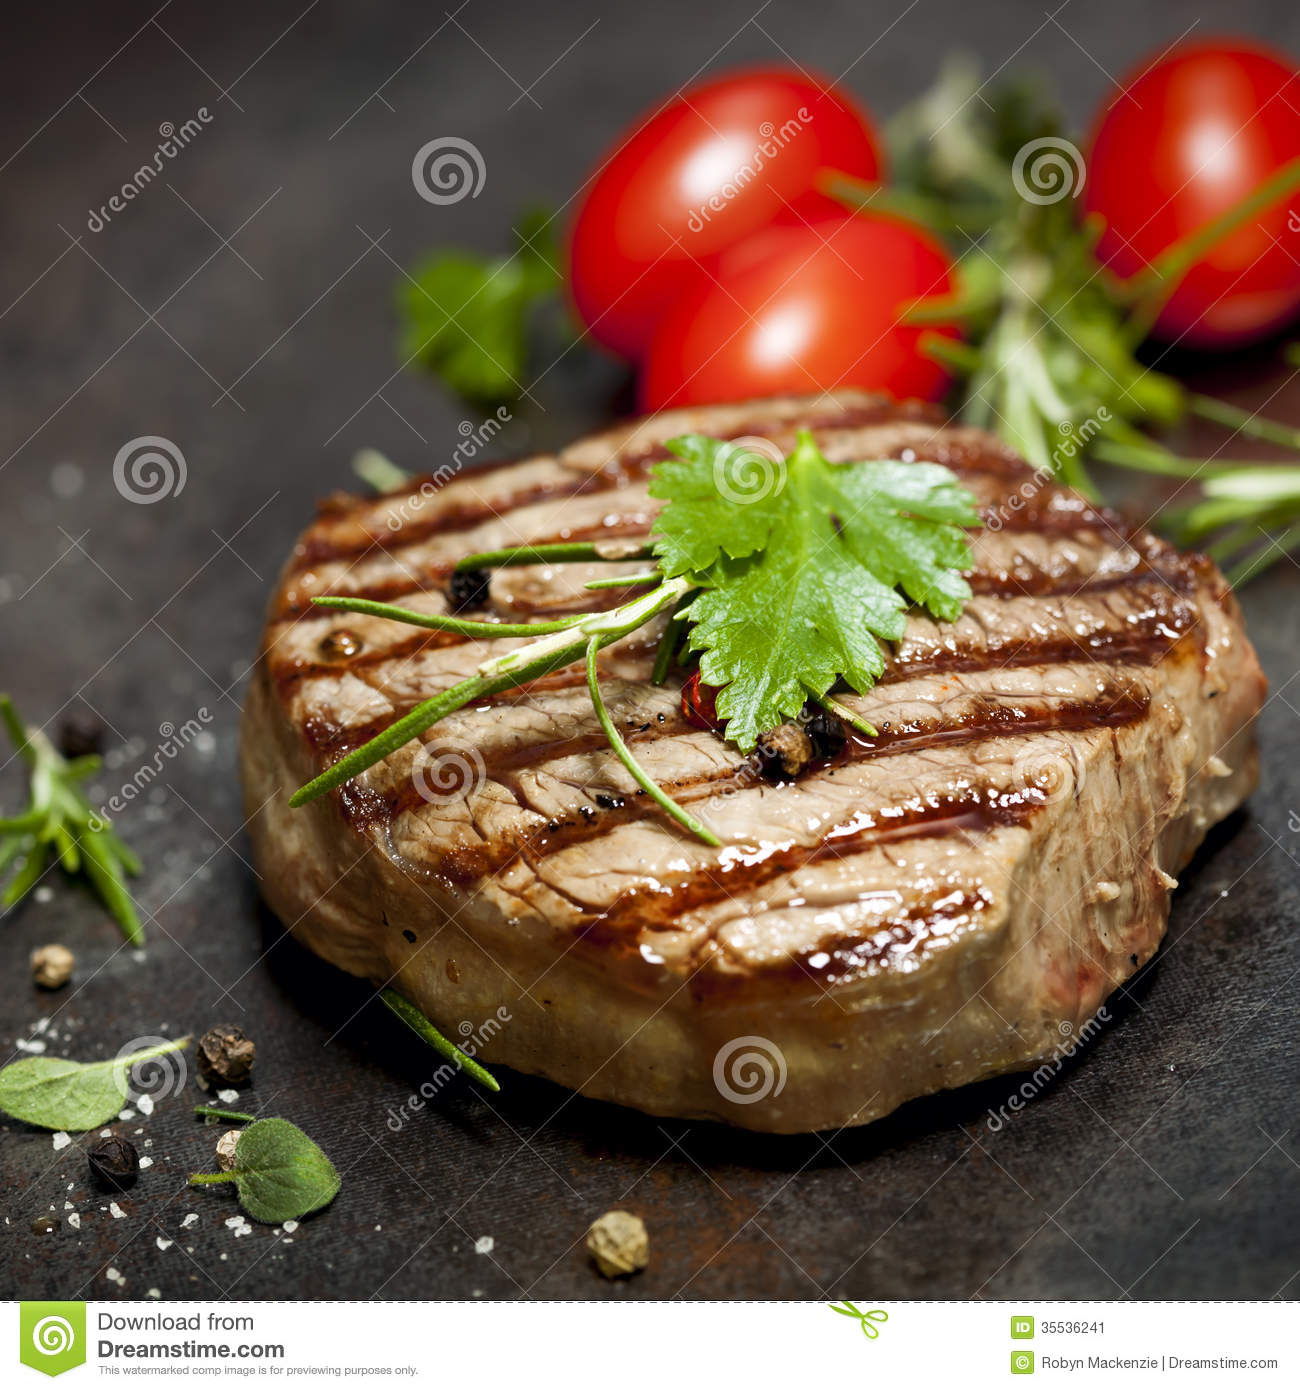 Grilled Steak With Herbs And Tomatoes Stock Image - Image: 35536241